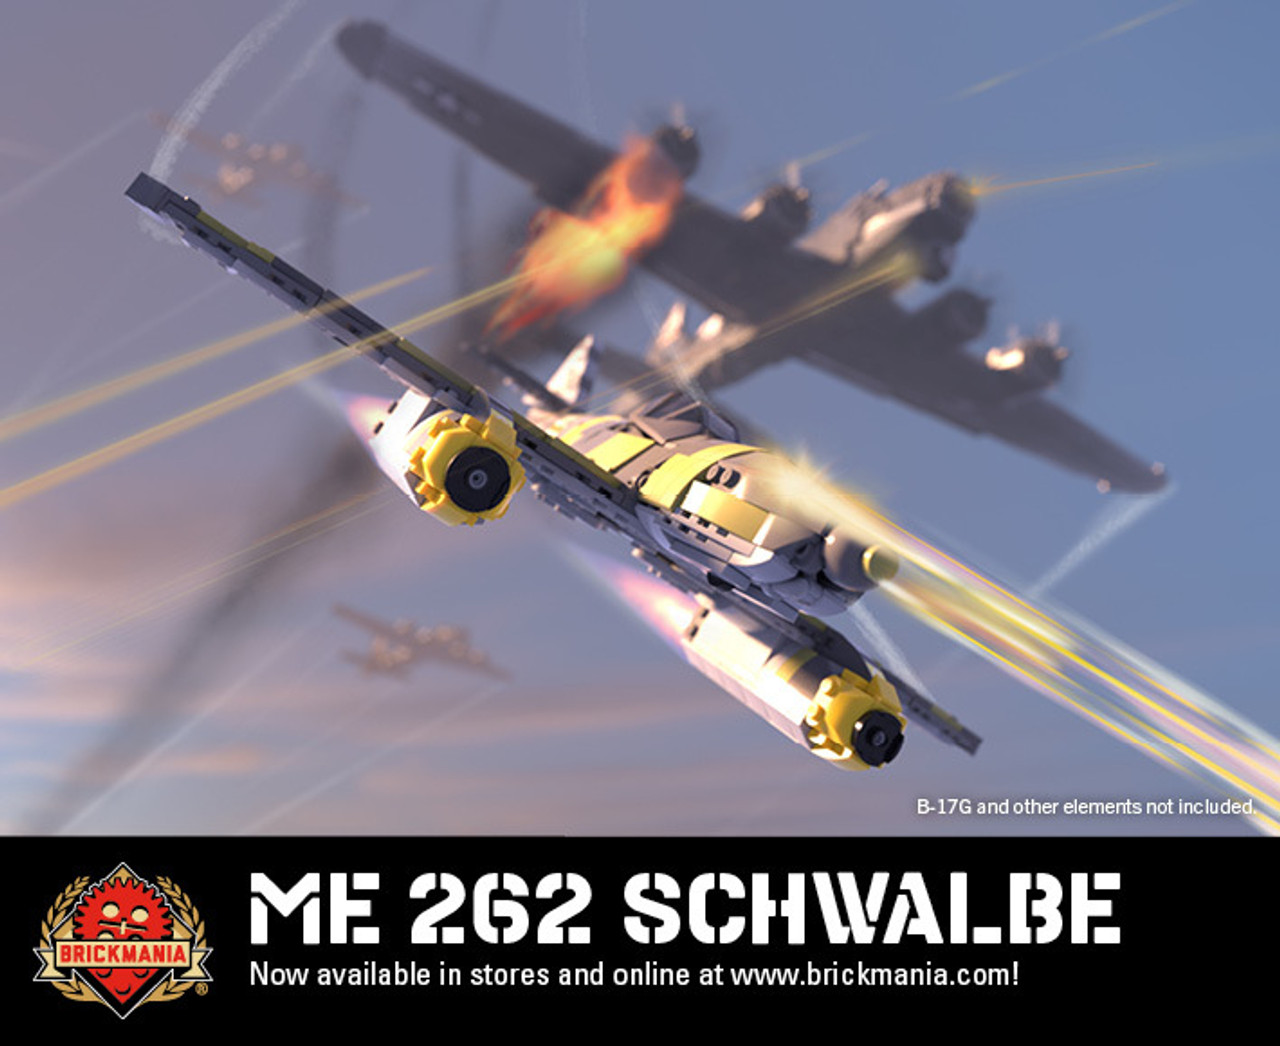 Me 262 Schwalbe - WWII Jet-Powered Fighter